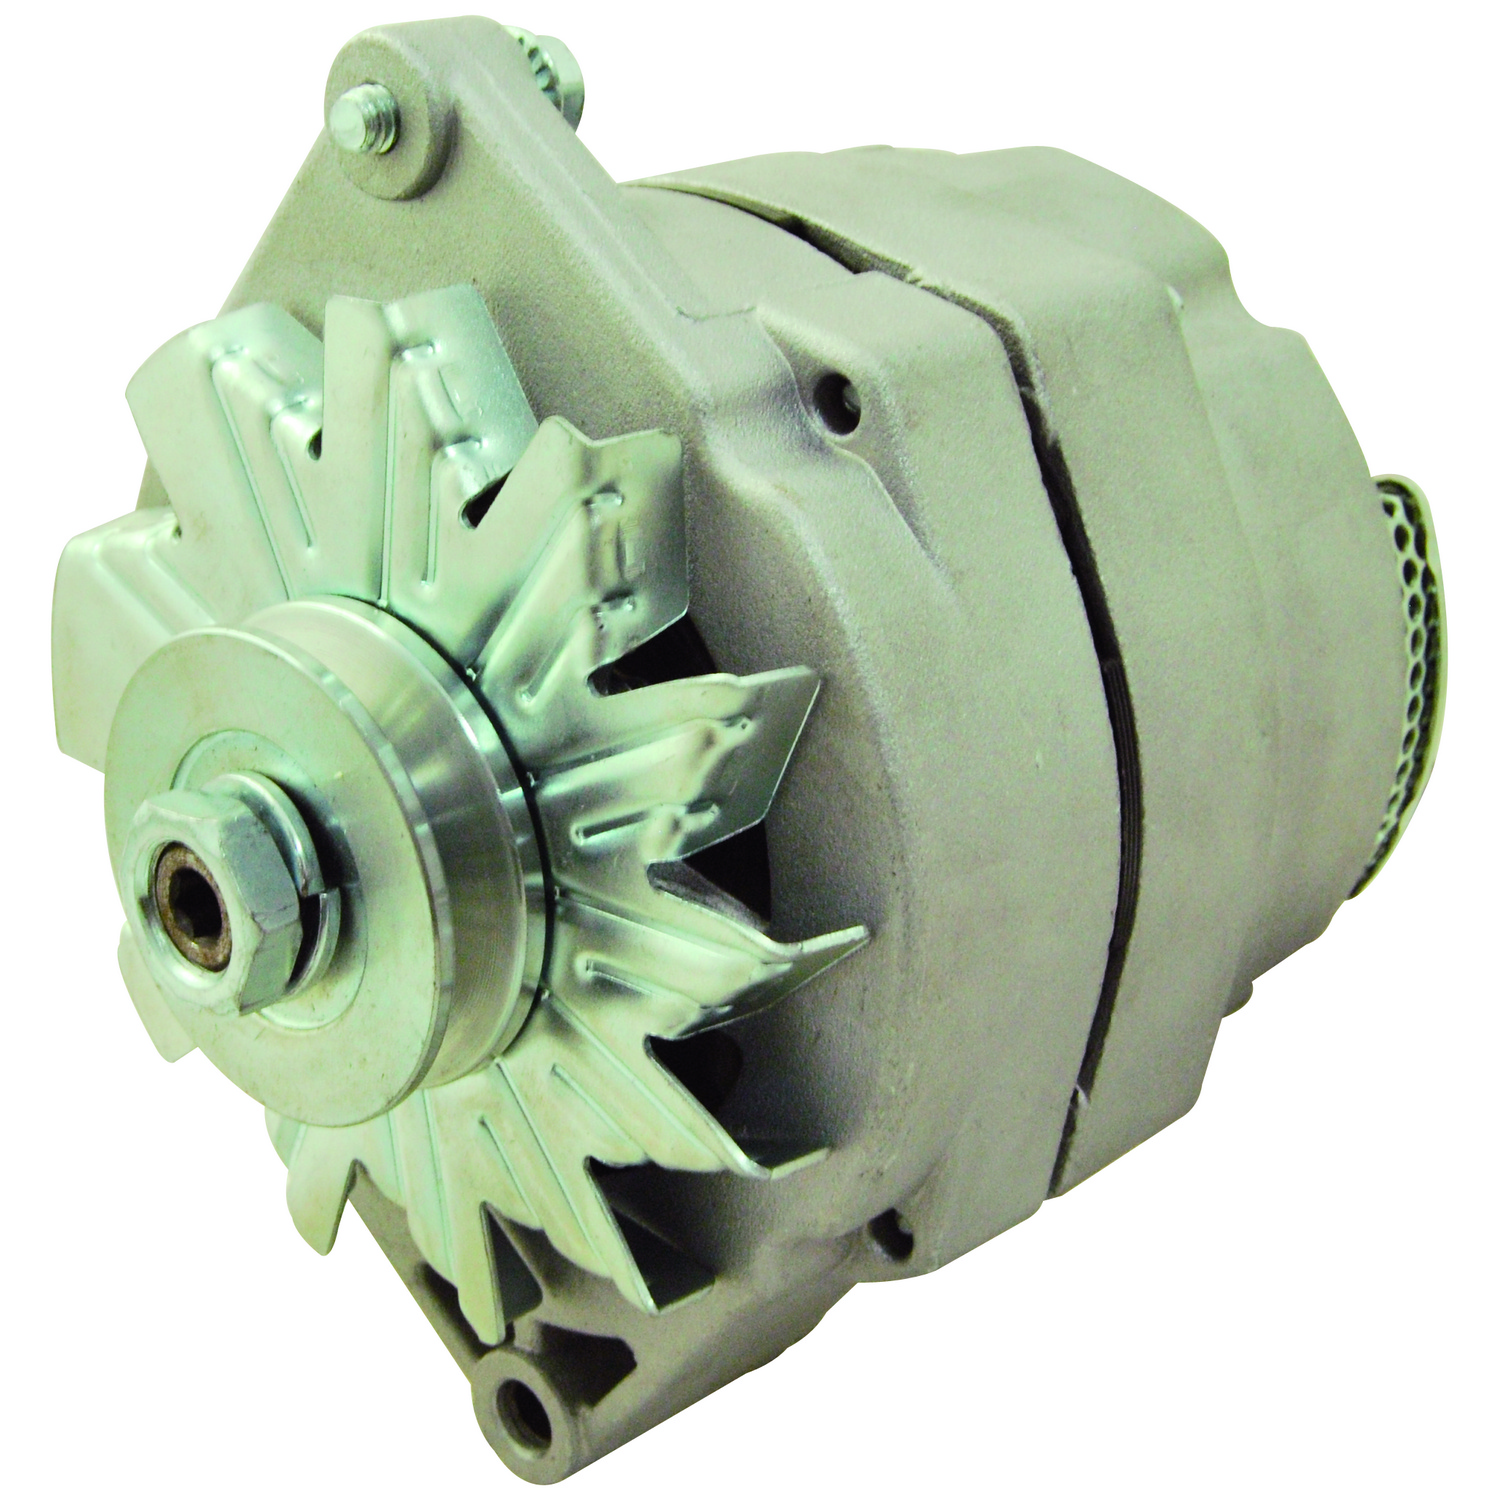 New Replacement Alternator For Delco Replaces Bobcat Case